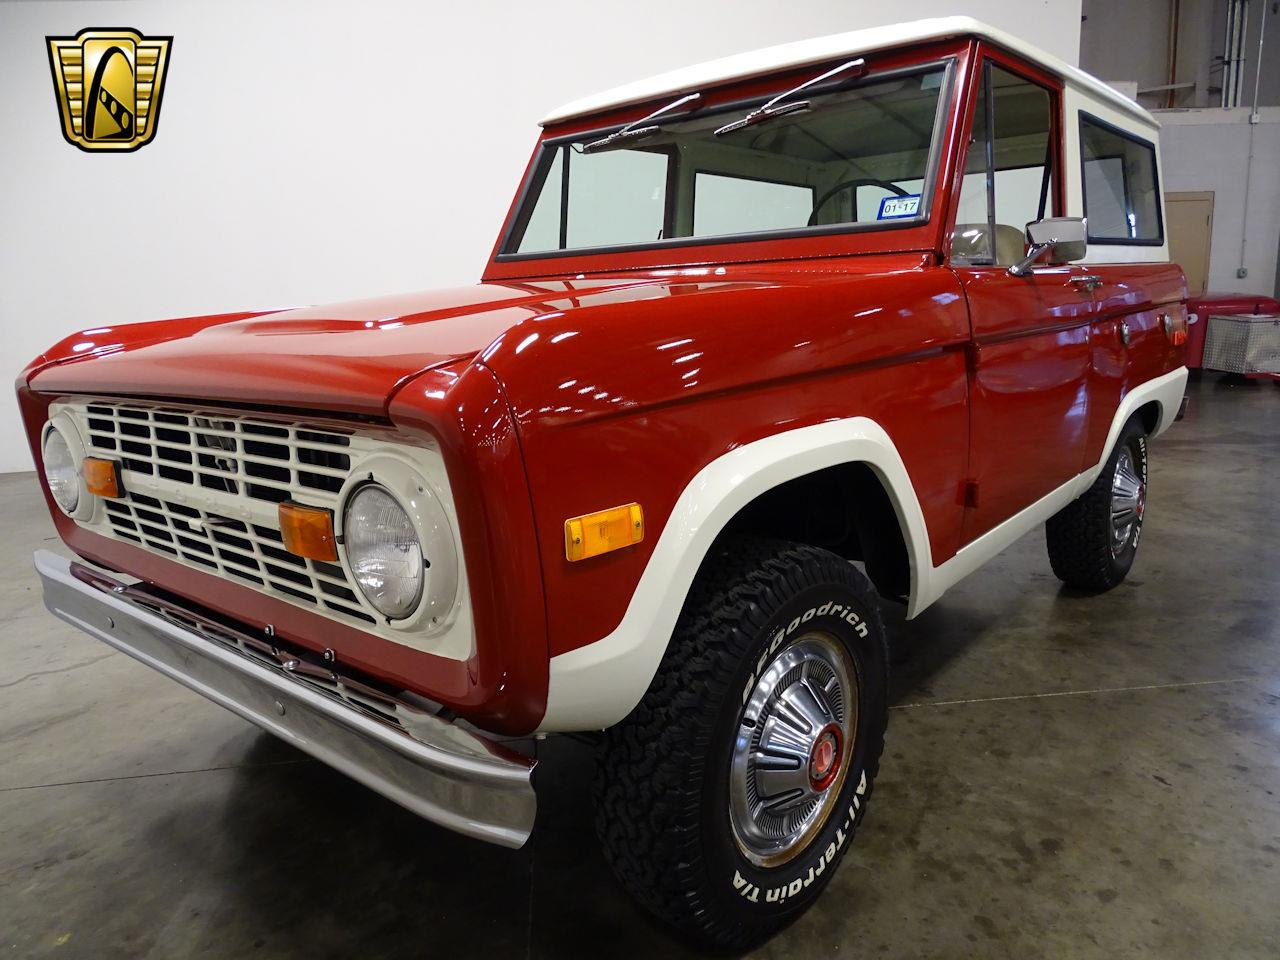 Large Picture of '73 Ford Bronco located in La Vergne Tennessee Offered by Gateway Classic Cars - Nashville - MN68